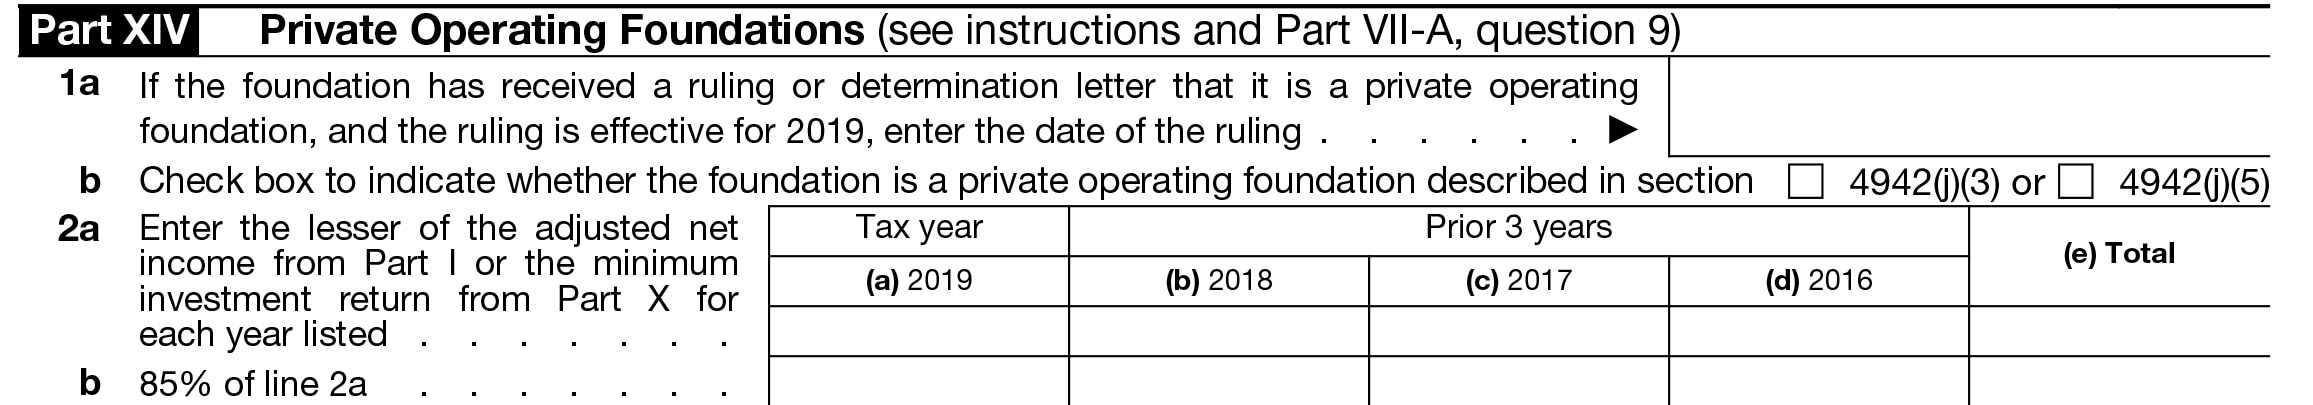 Part XIV - Private Operating Foundations